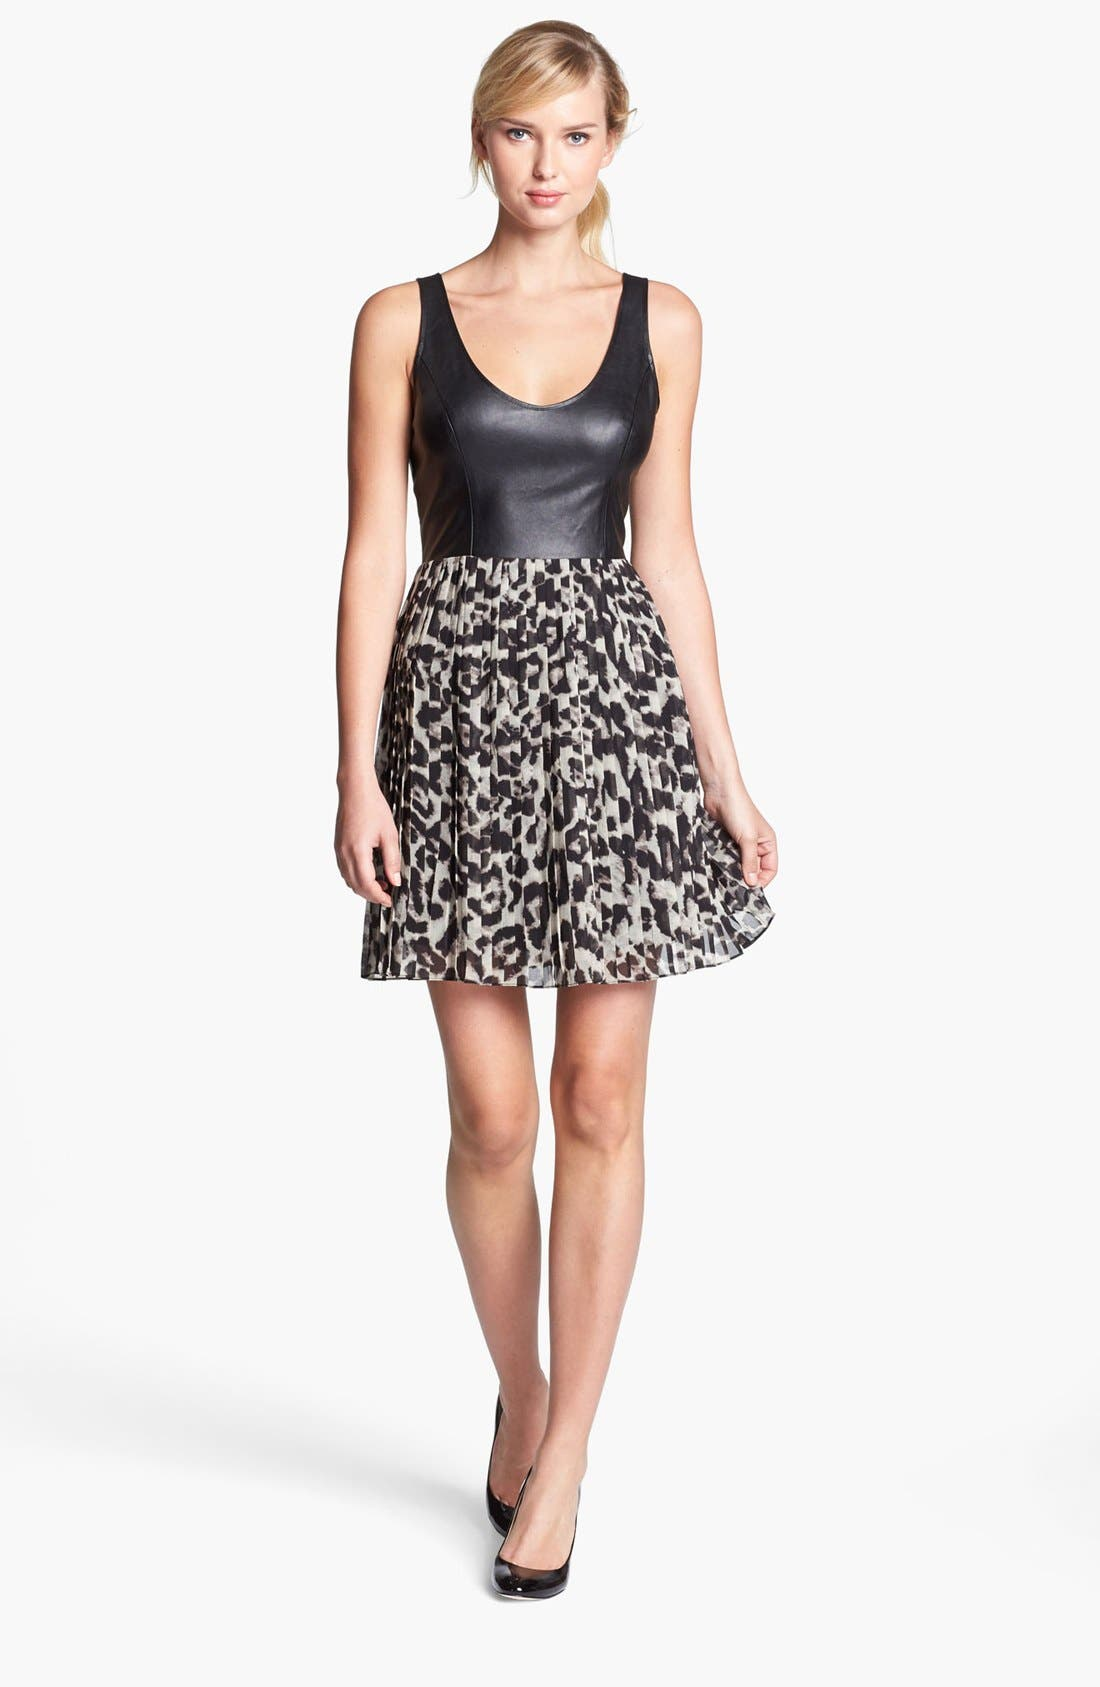 Alternate Image 1 Selected - BB Dakota Faux Leather Bodice & Animal Print Skirt Dress (Online Only)